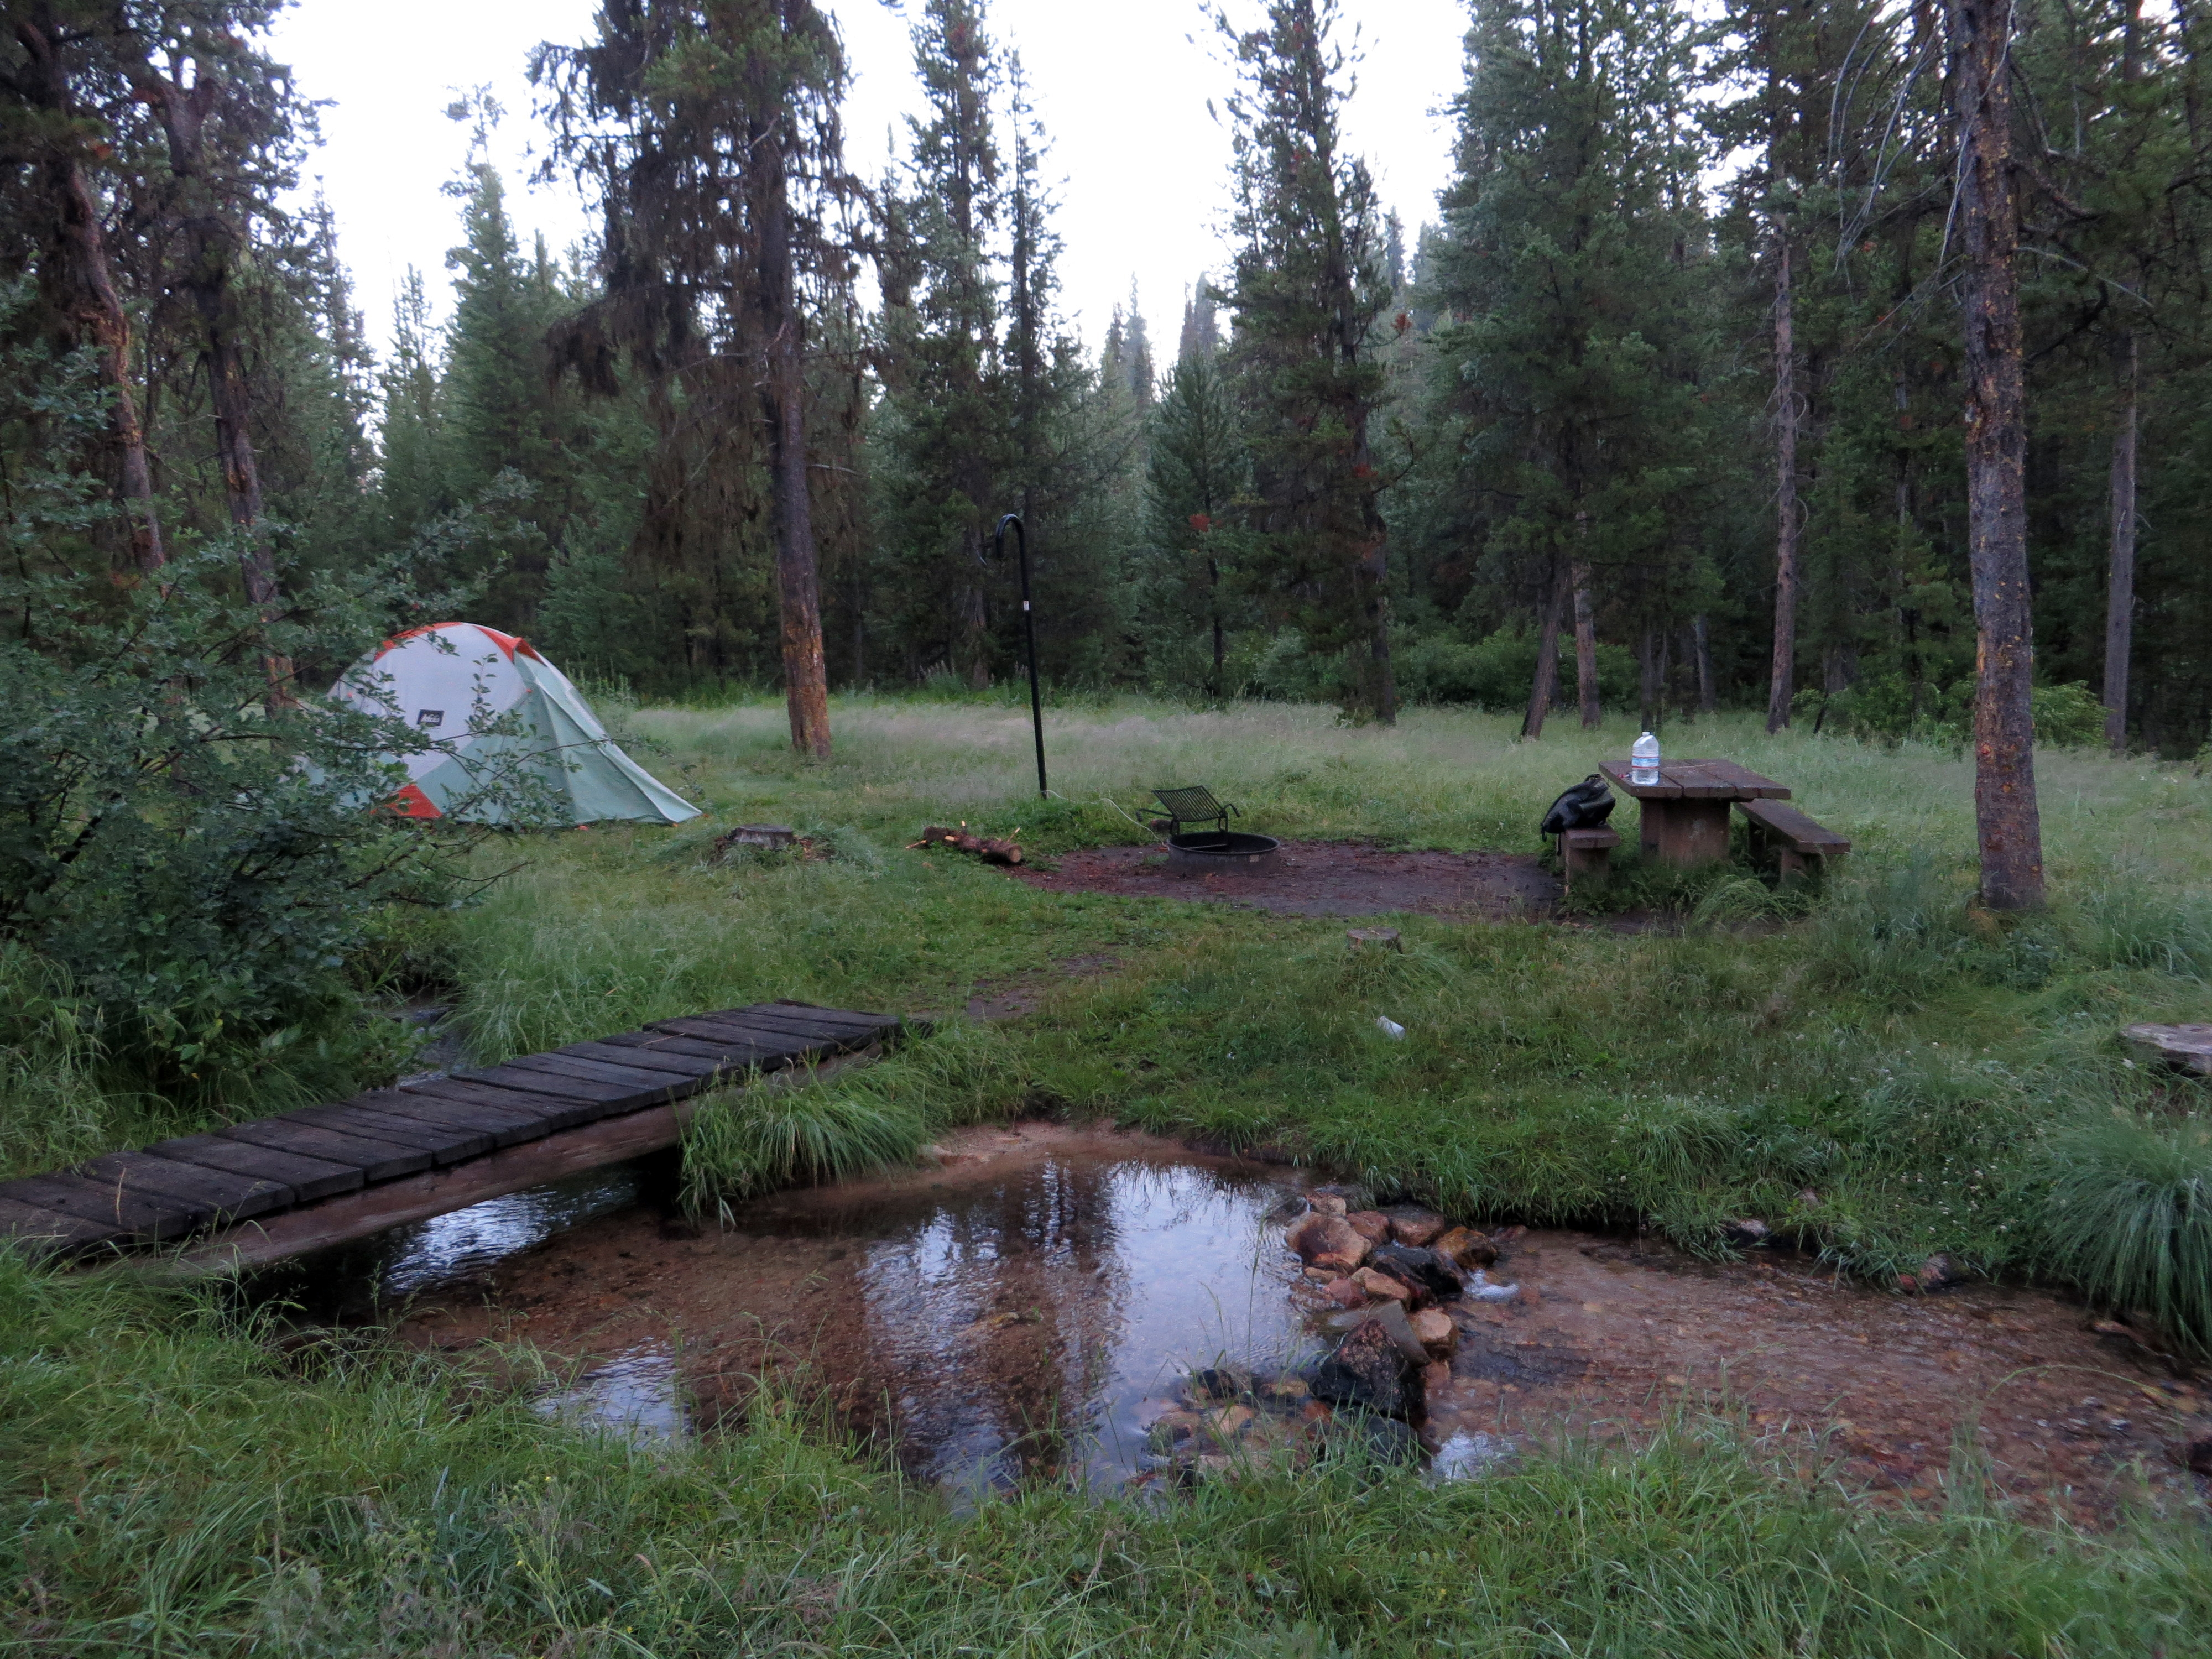 Morning Theft Creek Camp, Boise National Forest, ID July 31 (photo by D. Speredelozzi)